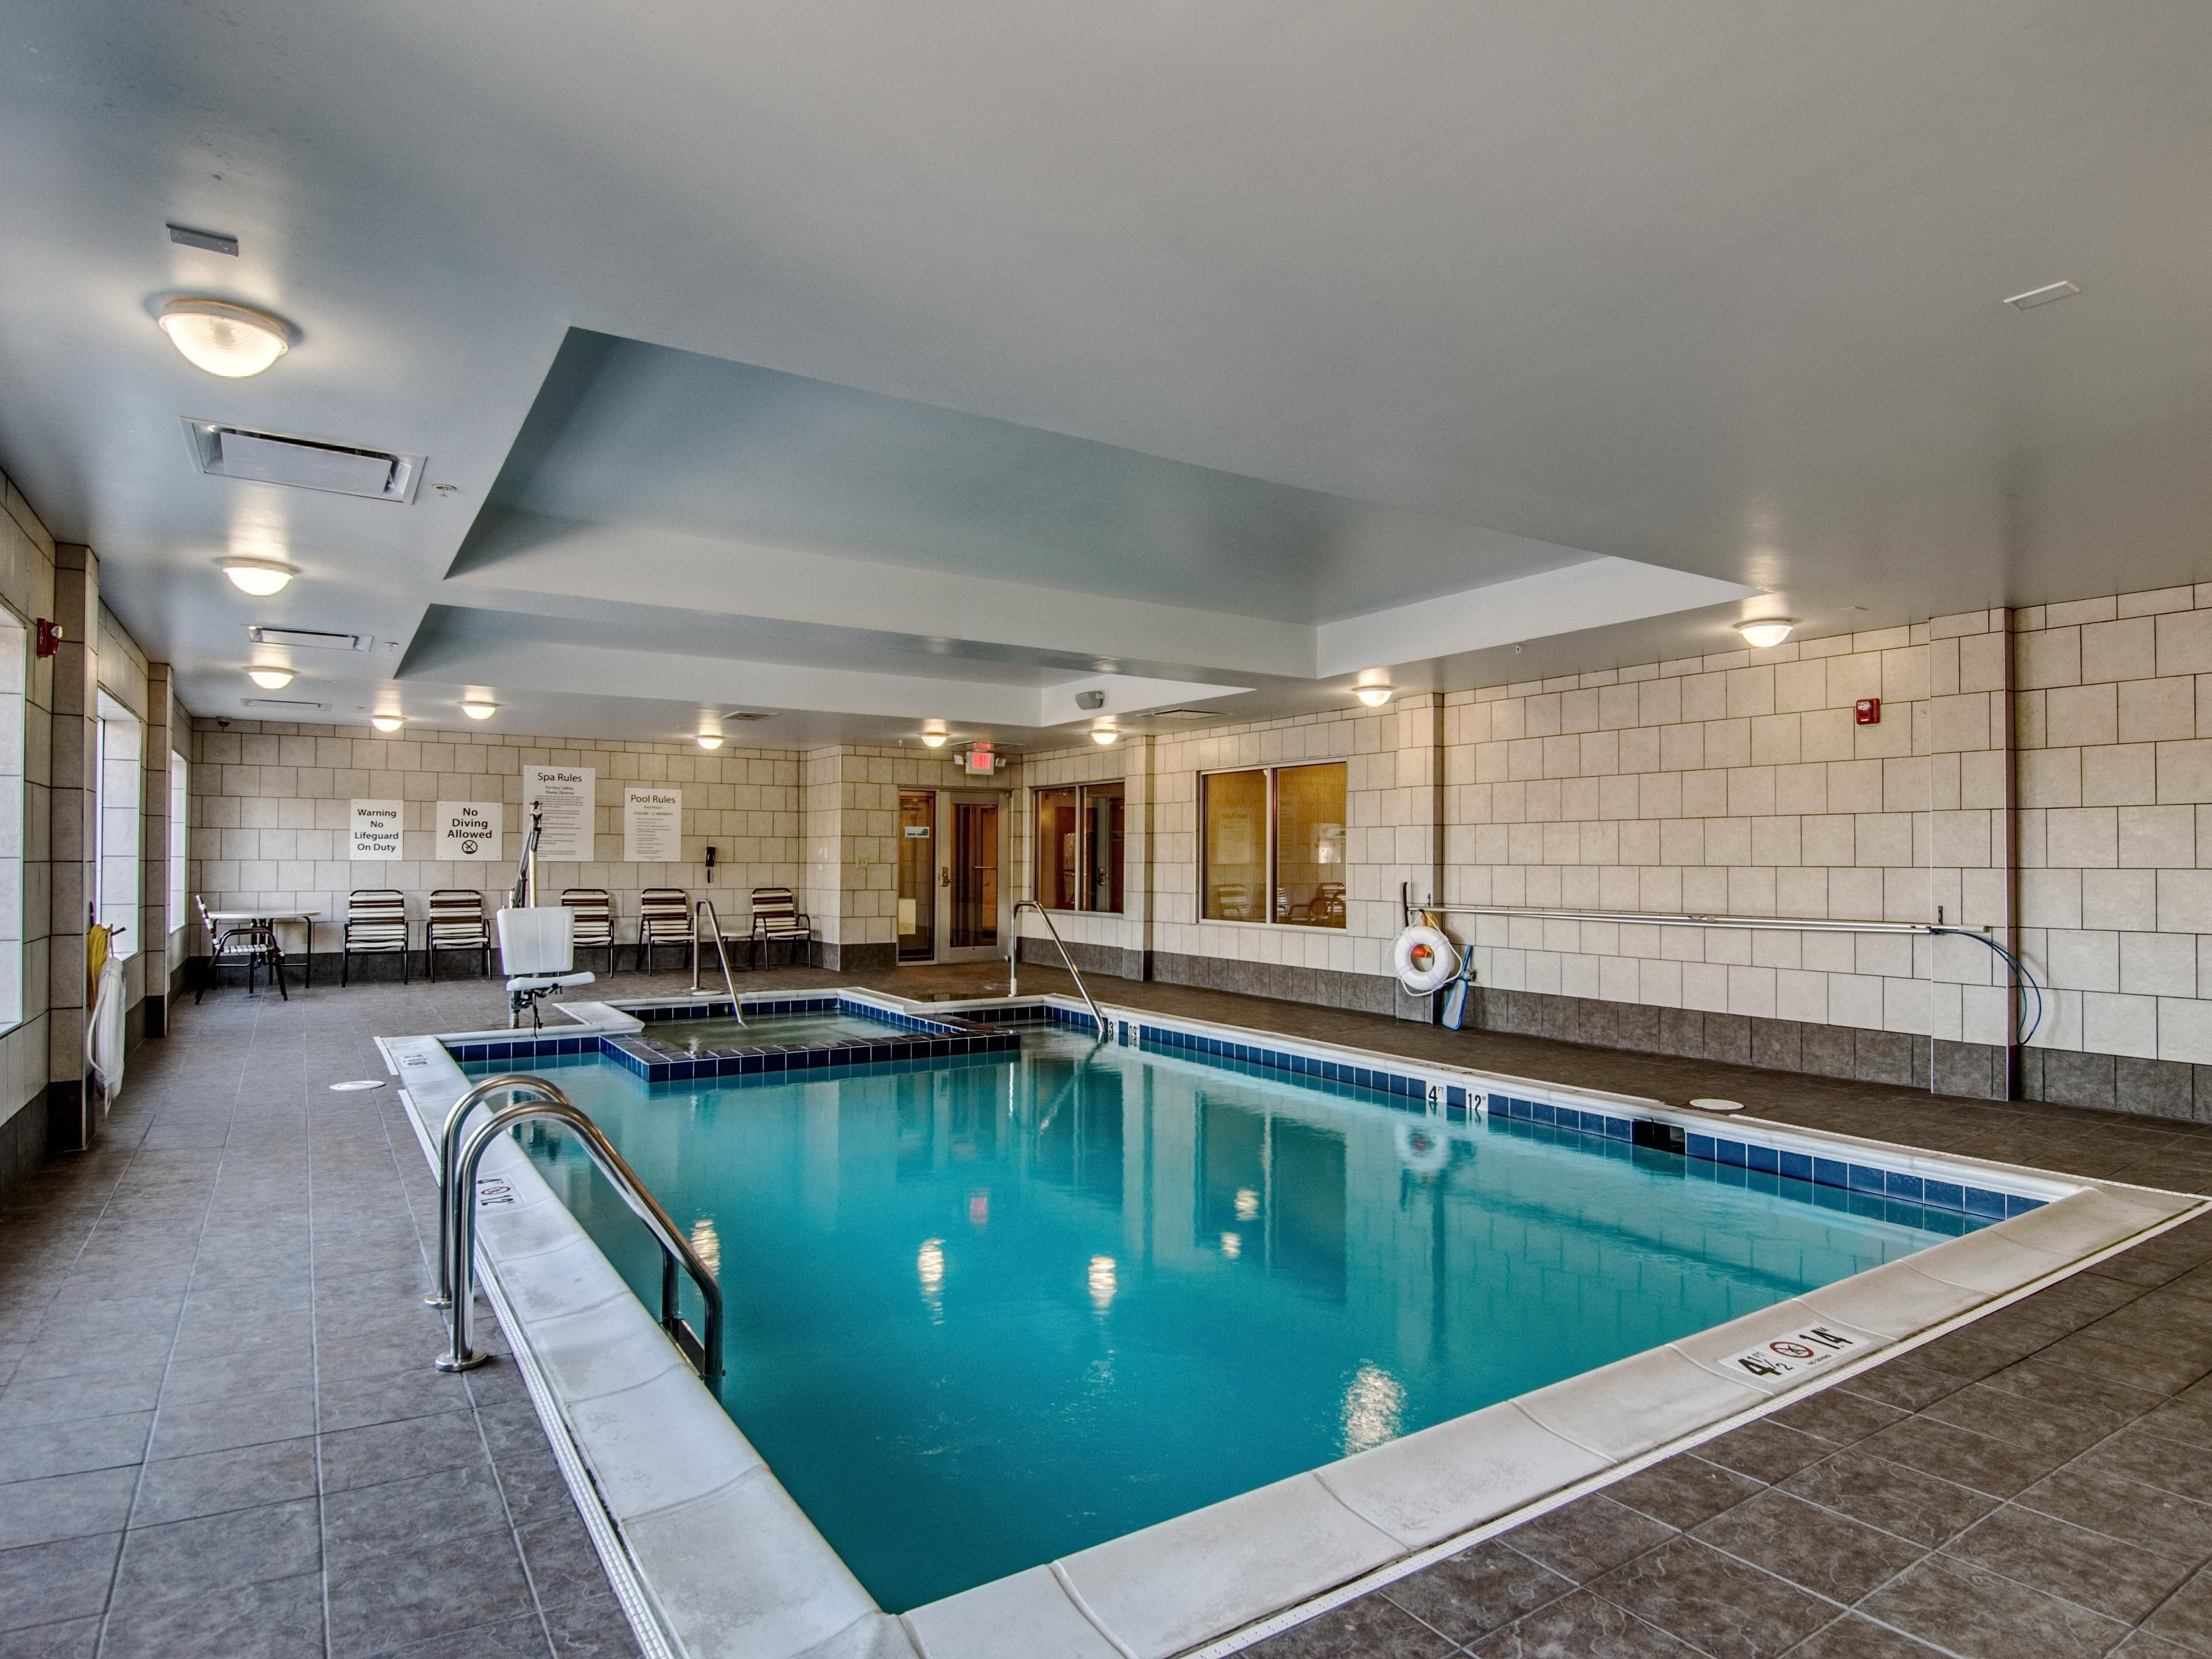 Swimming Pool with Handicap Pool Lift